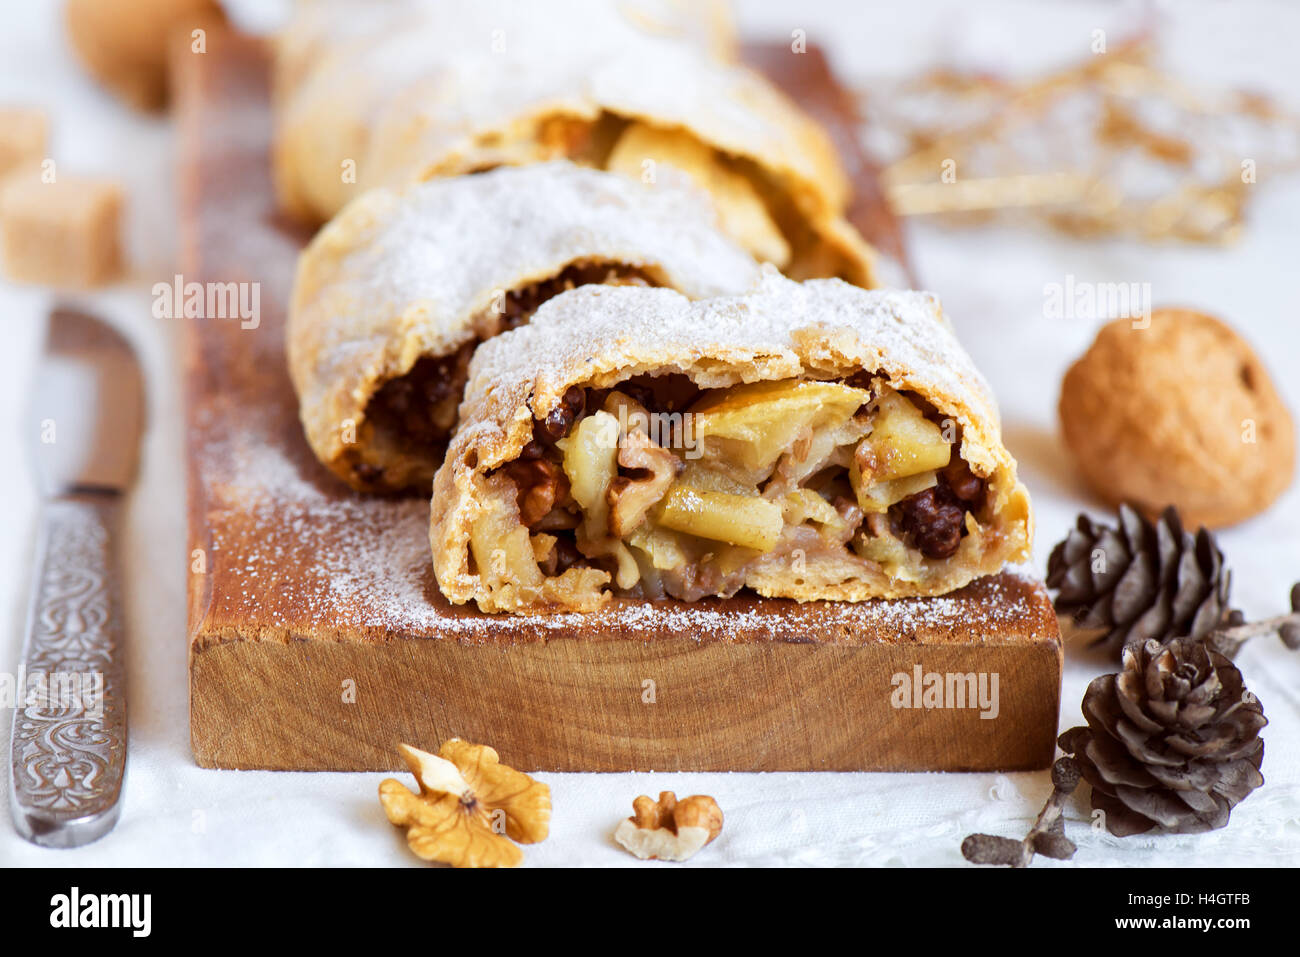 Christmas homemade pastry. Apple strudel (pie) with raisins, walnuts and powdered sugar with Christmas decor close - Stock Image